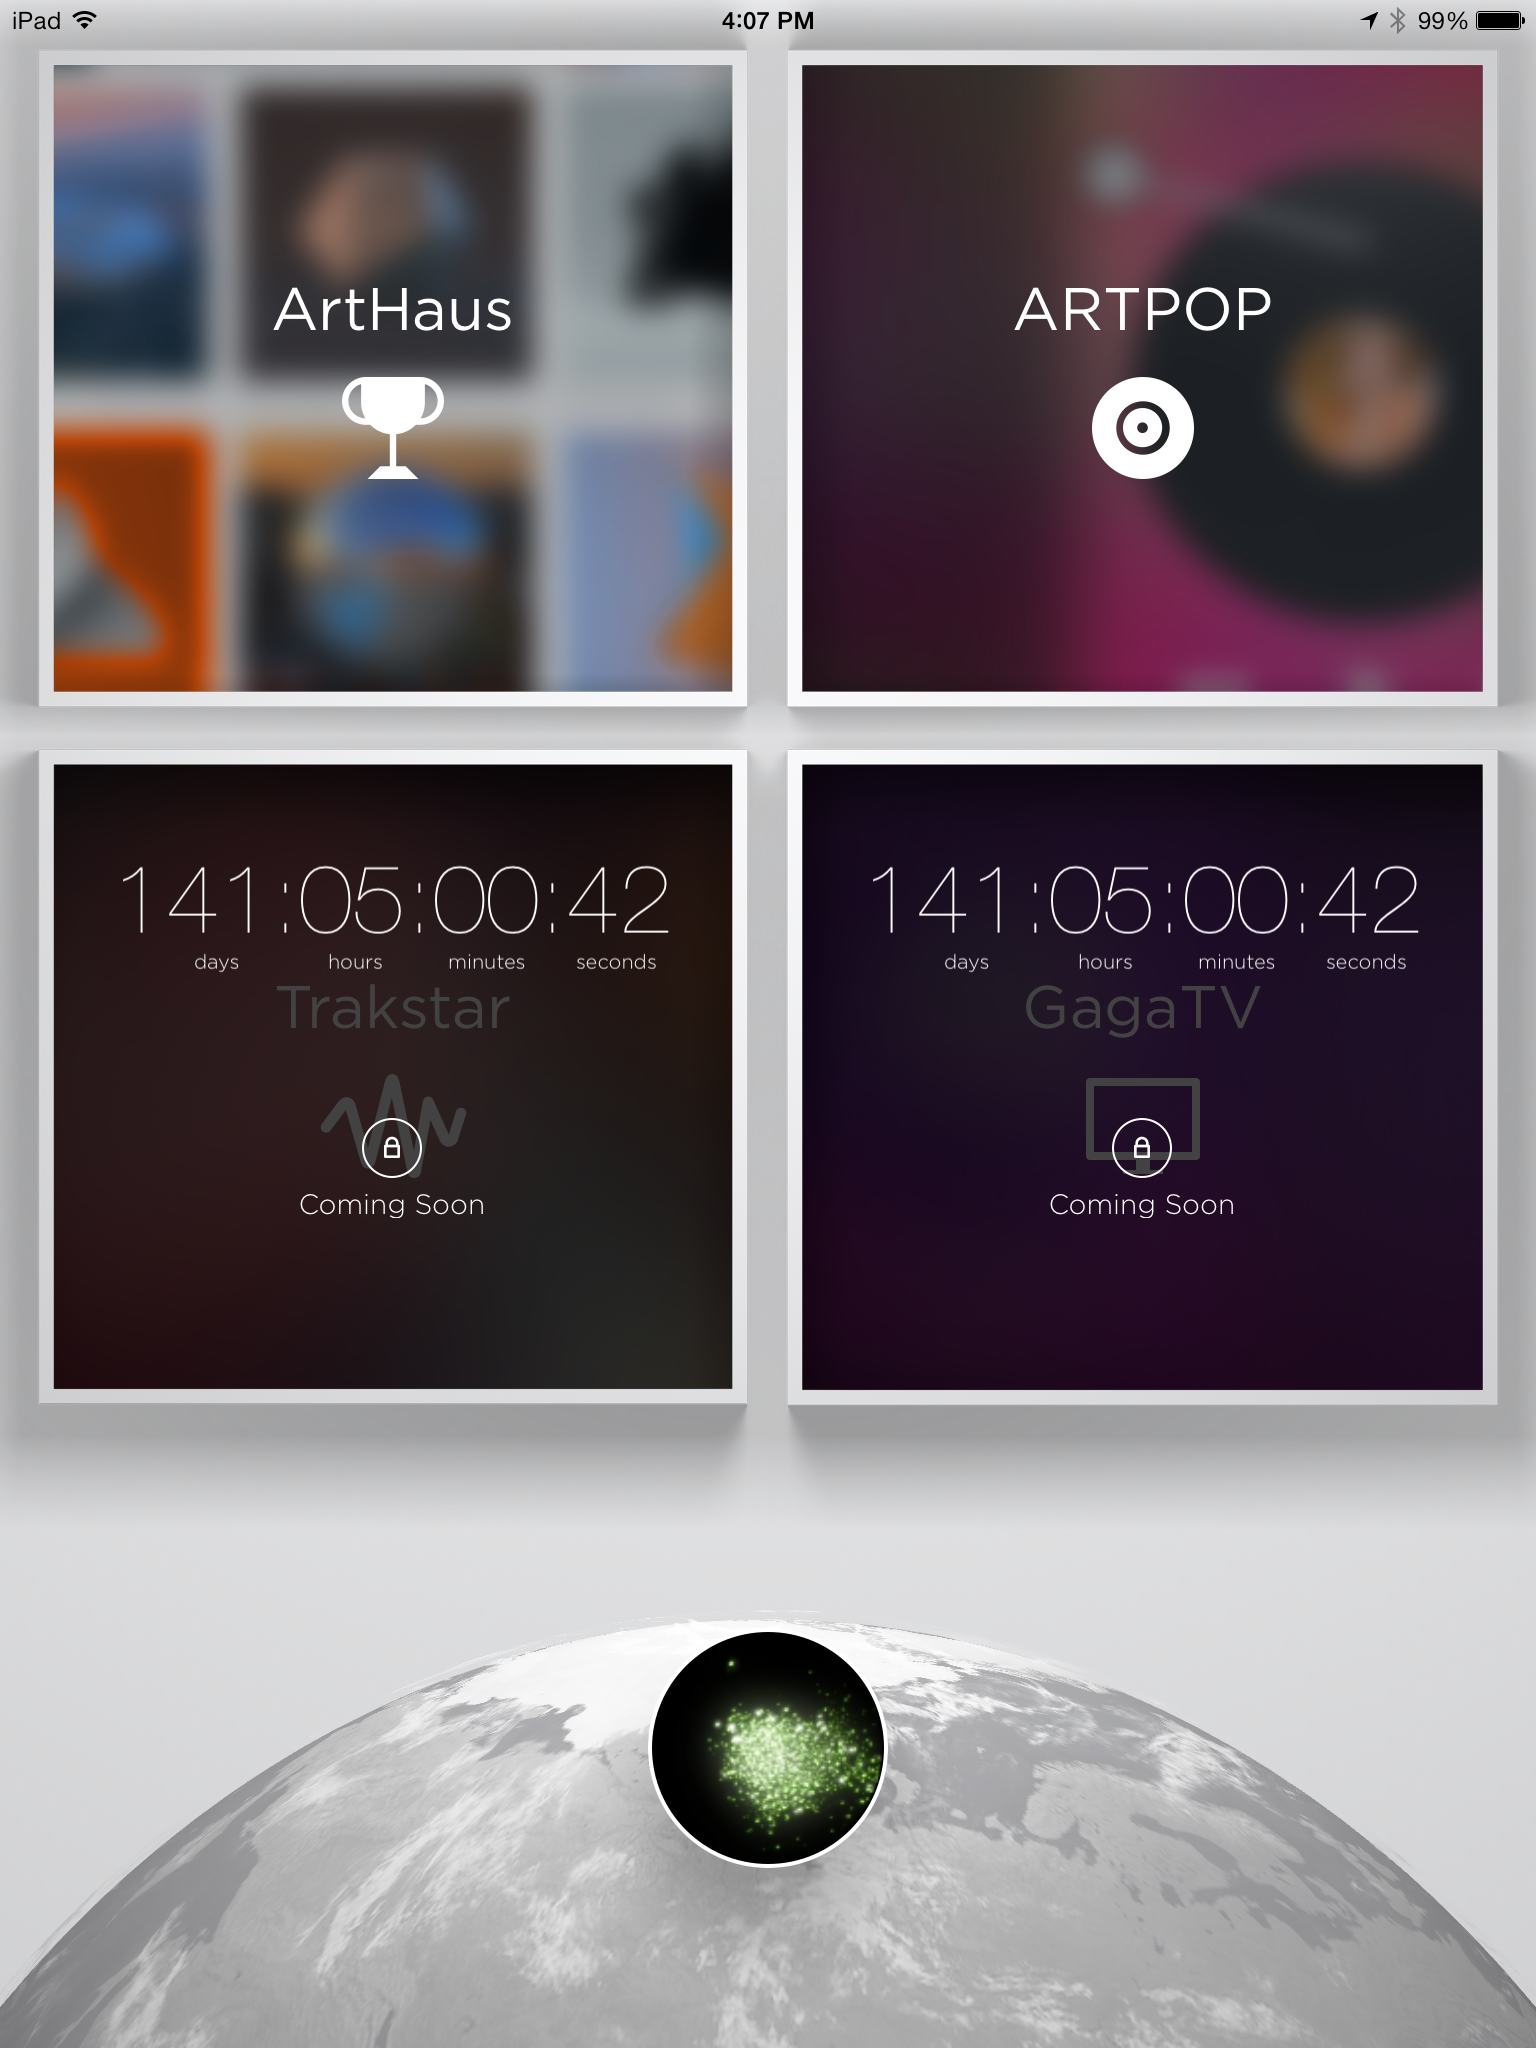 File:ARTPOP App Main Menu.jpg